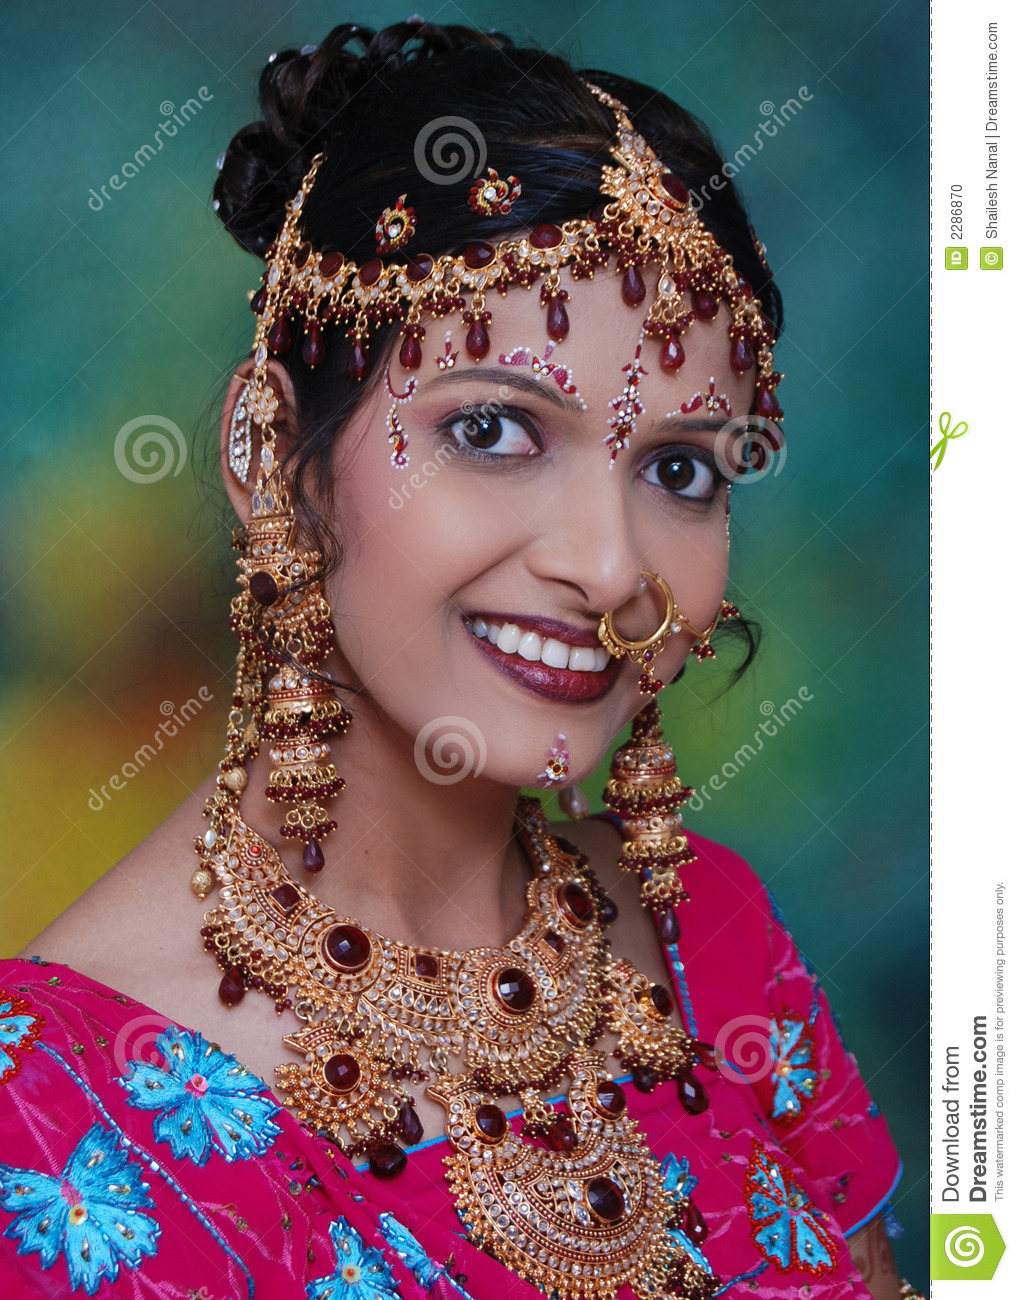 e56bfbd3fb0faf Indian bridal jewelry stock photo. Image of beauty, bridal - 2286870